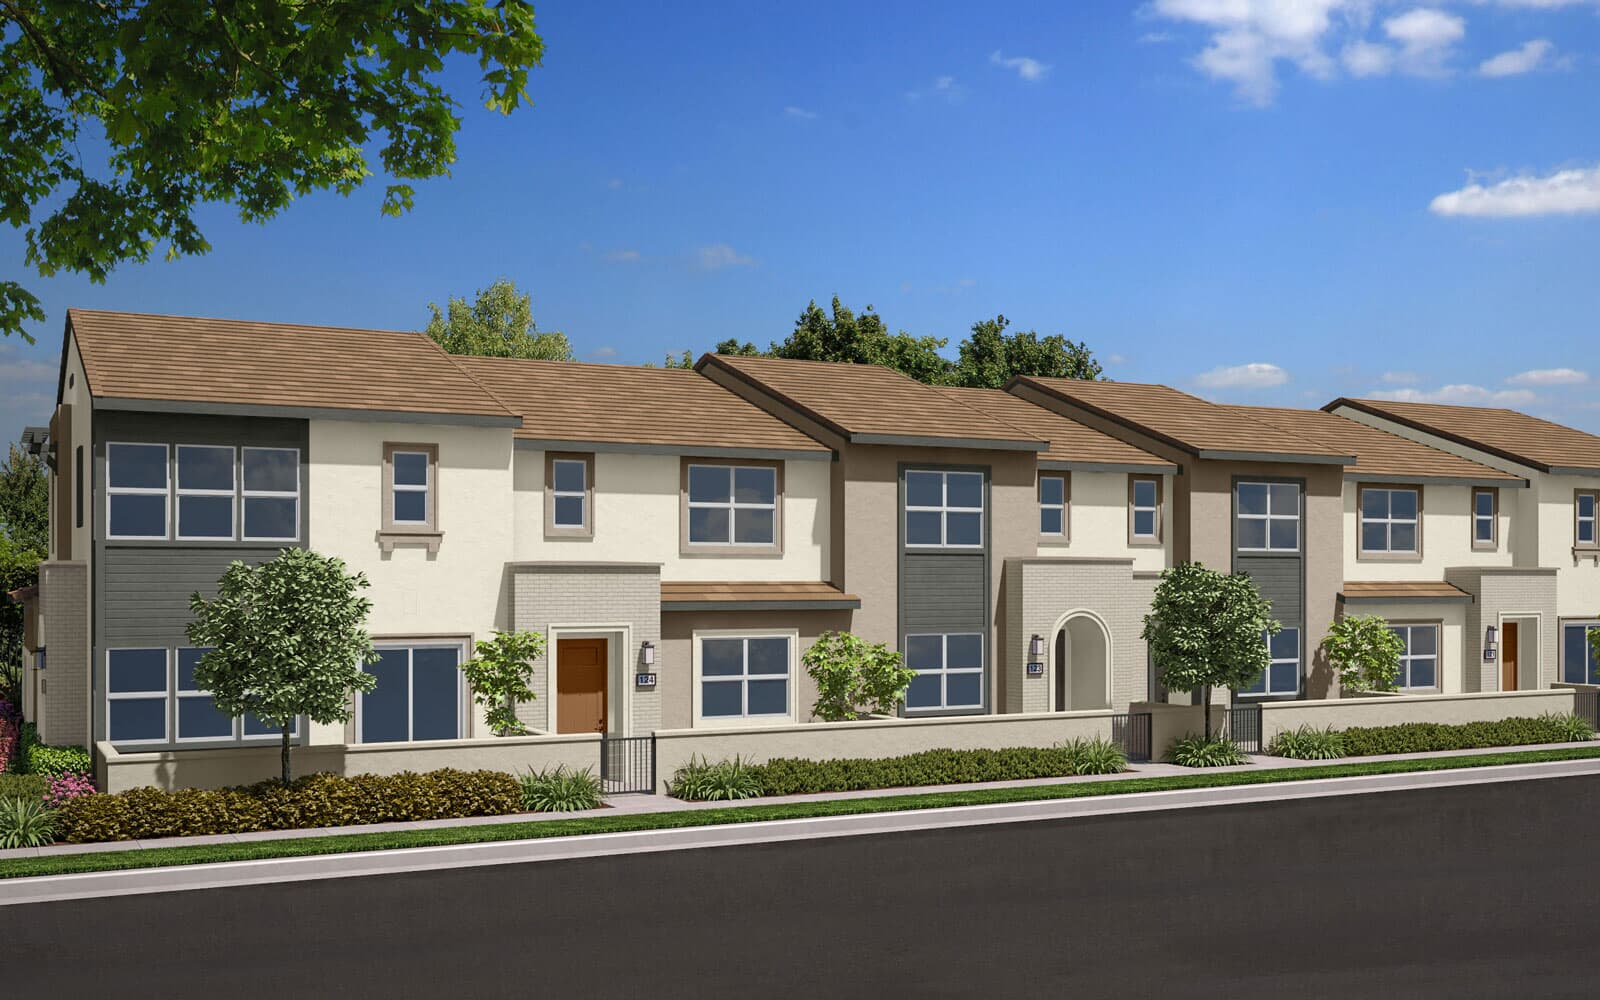 Exterior Rendering B Scheme 3 | Indigo Canvas Park at New Haven in Ontario Ranch, CA | Brookfield Residential